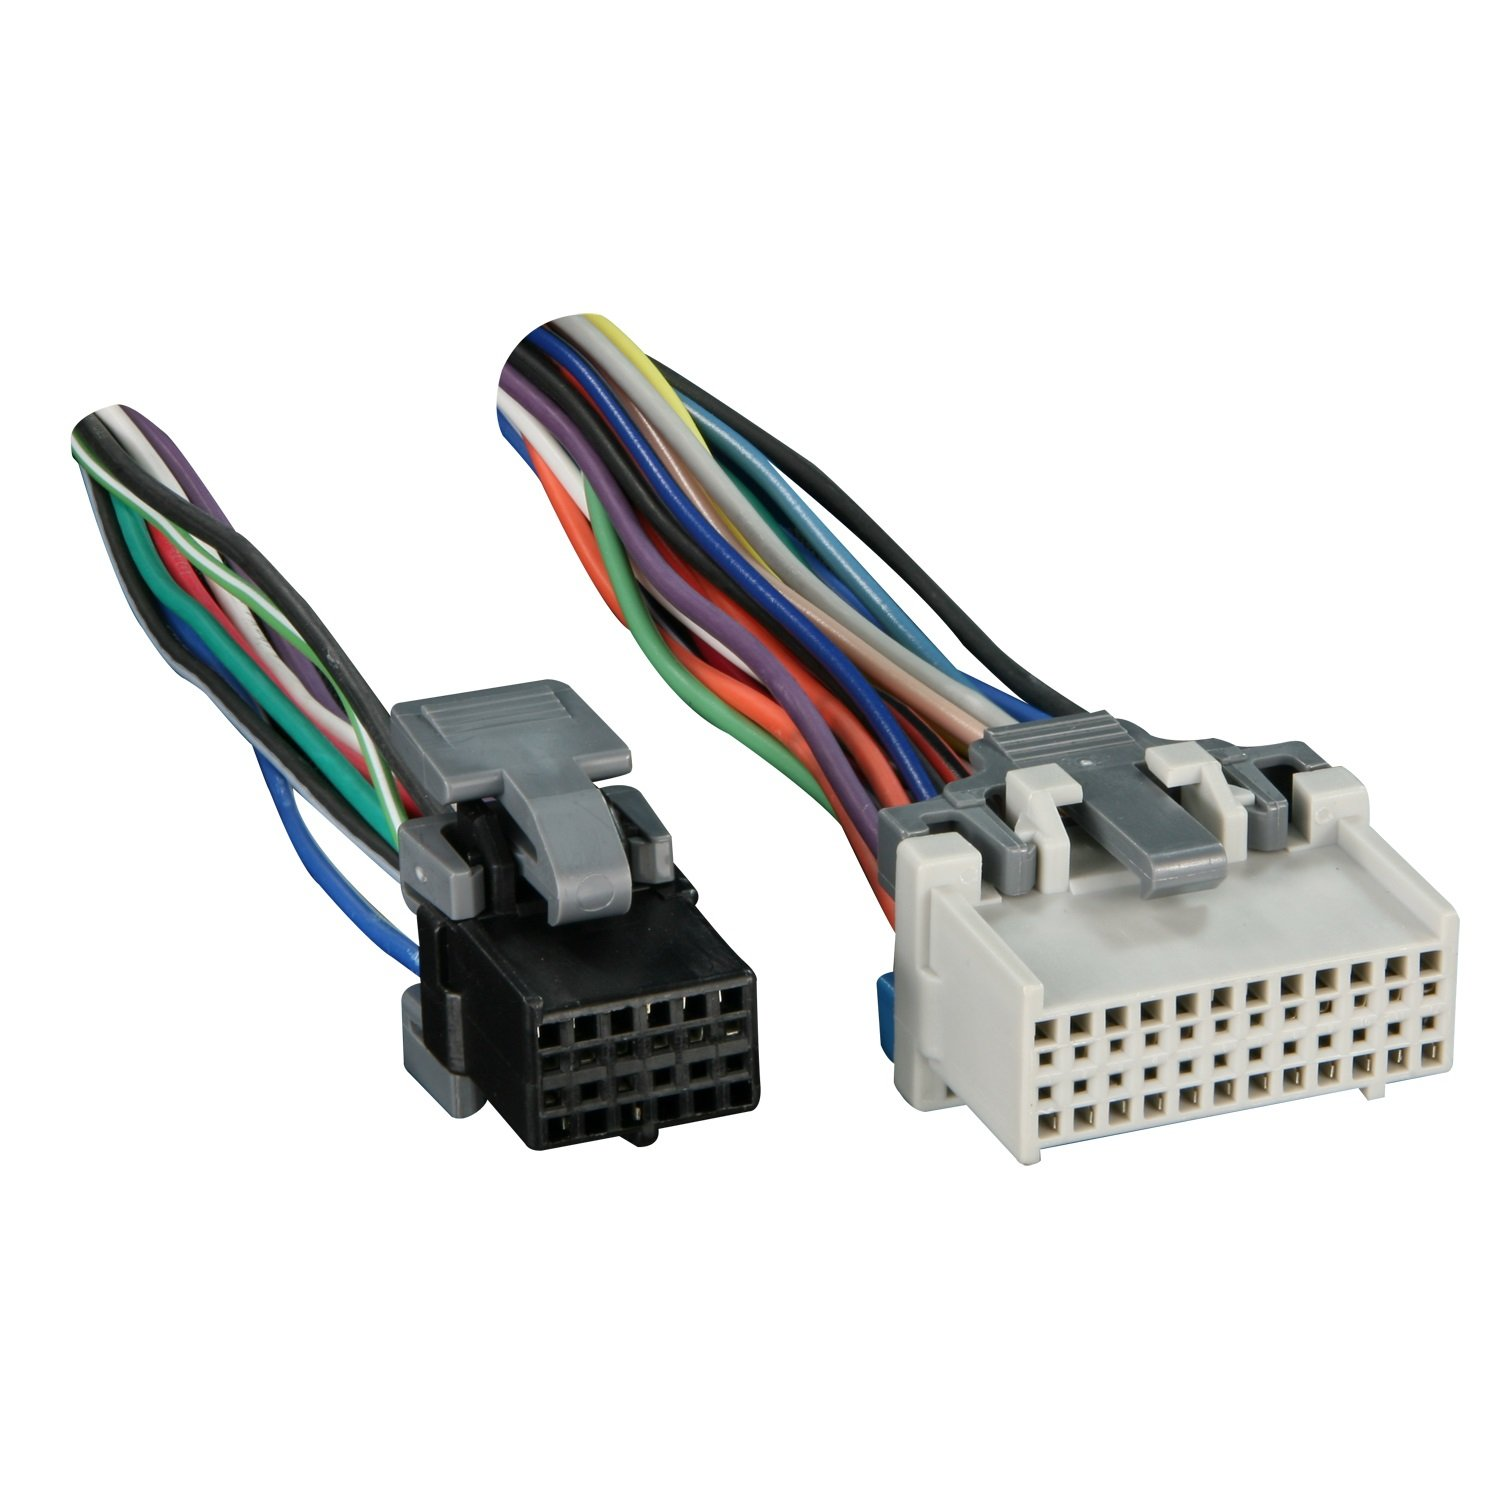 711log4bdML._SL1500_ amazon com metra turbowires 71 2003 1 wiring harness car electronics  at couponss.co